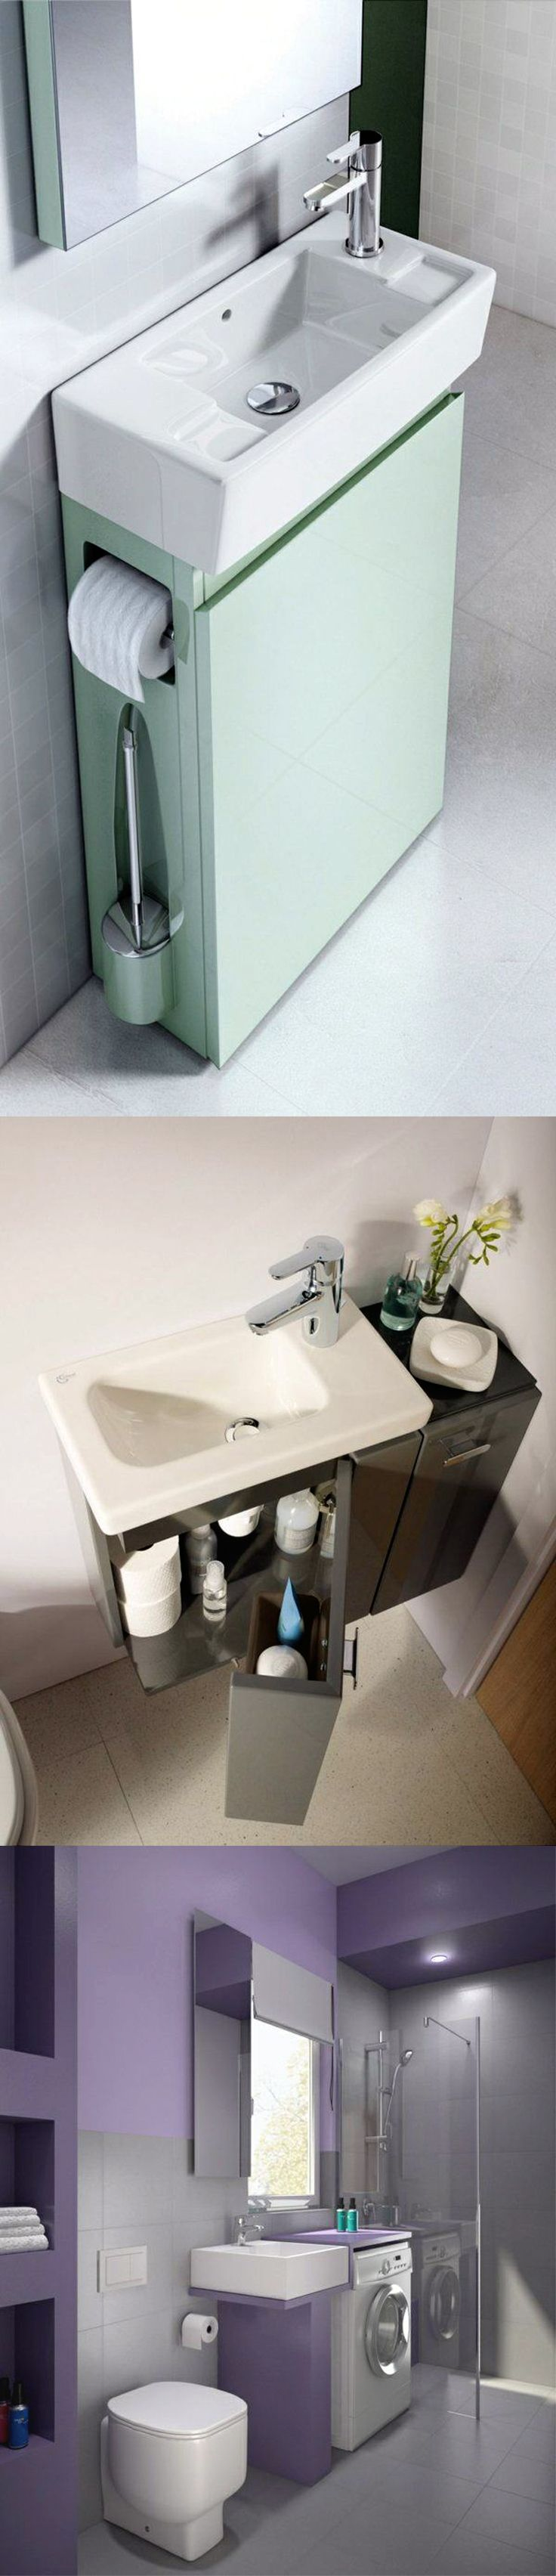 Small bathroom ideas space saving modern bathroom furniture practical cabinet sink washing